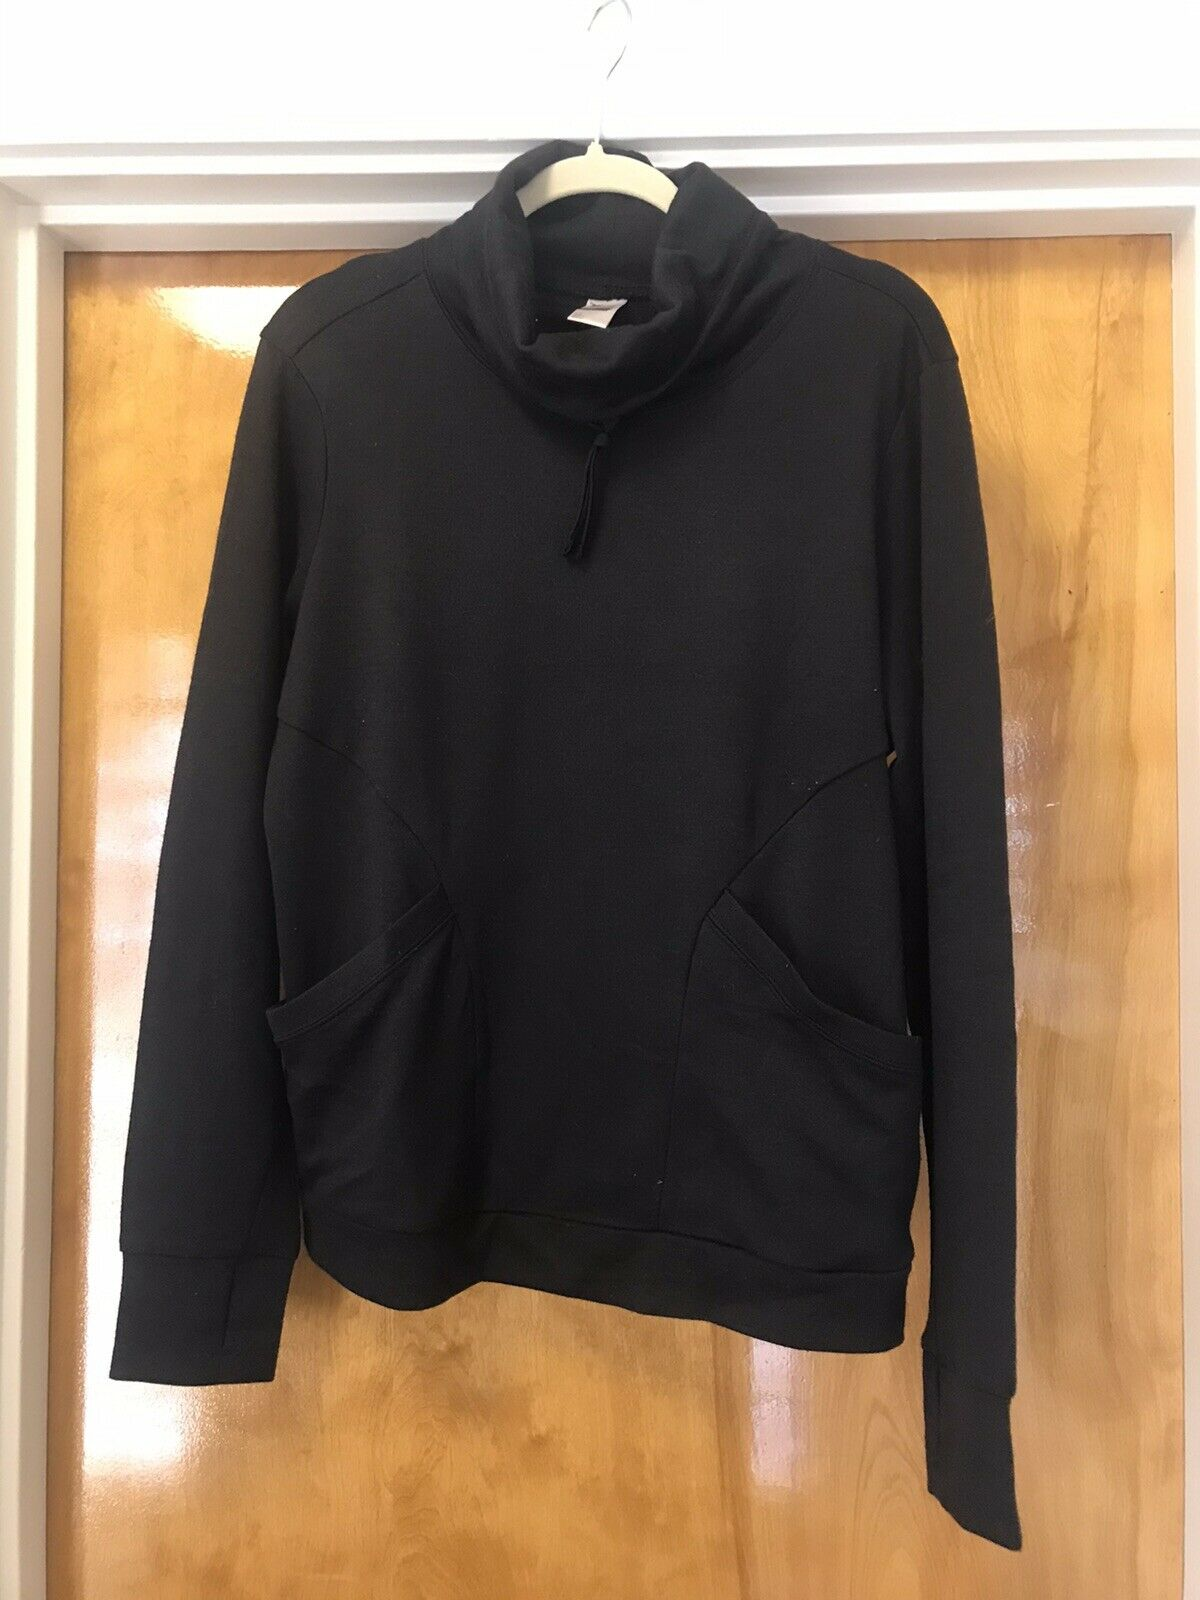 Old Navy Women's Active Funnel Neck Pullover Black Women's Large L